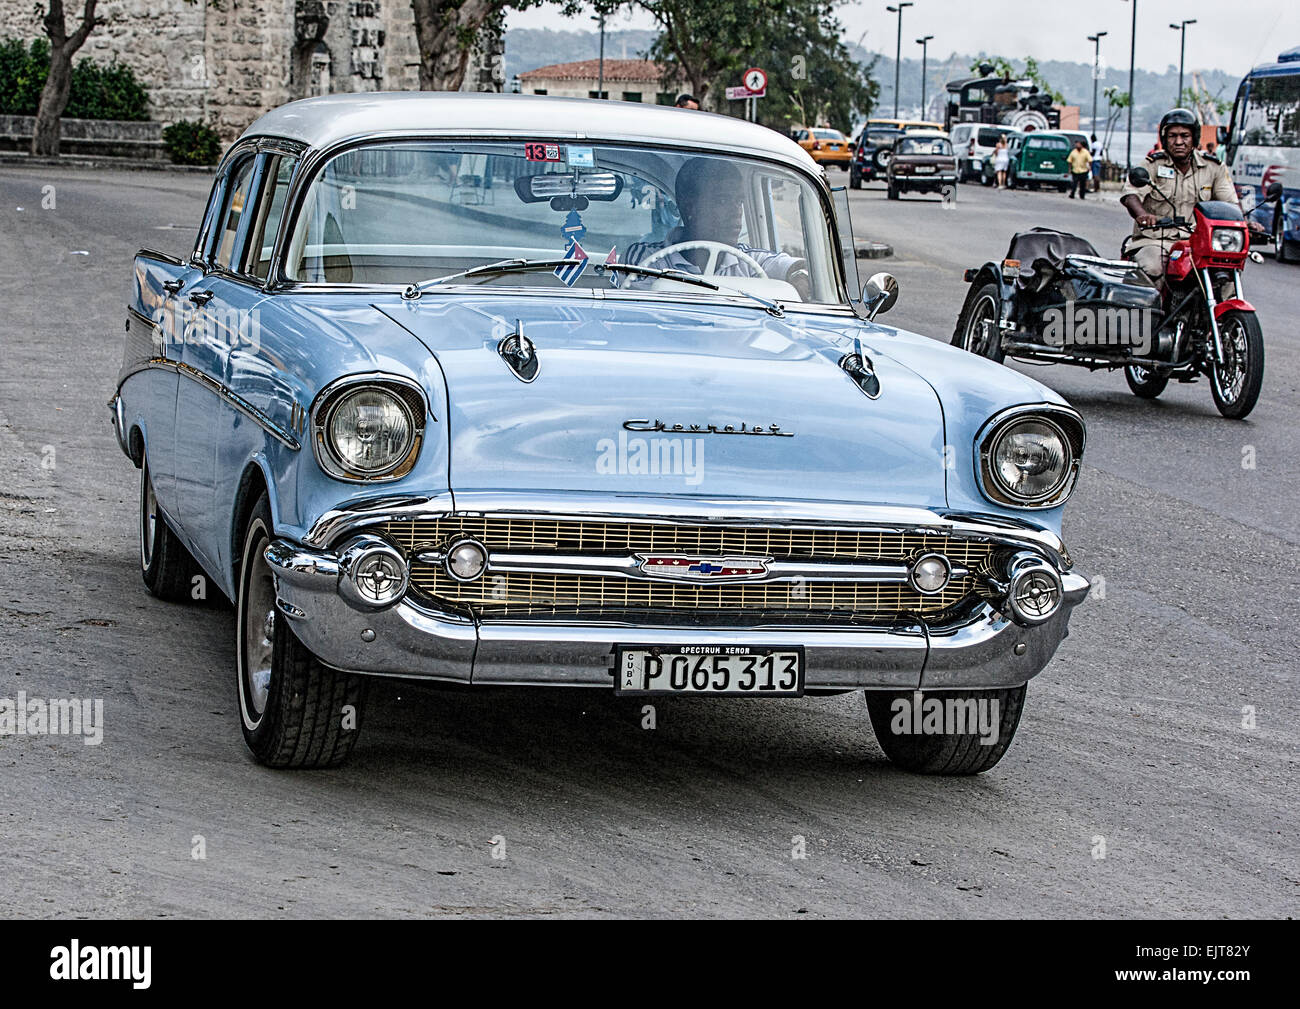 Old light blue Chevrolet American car in Havana Cuba with an old ...